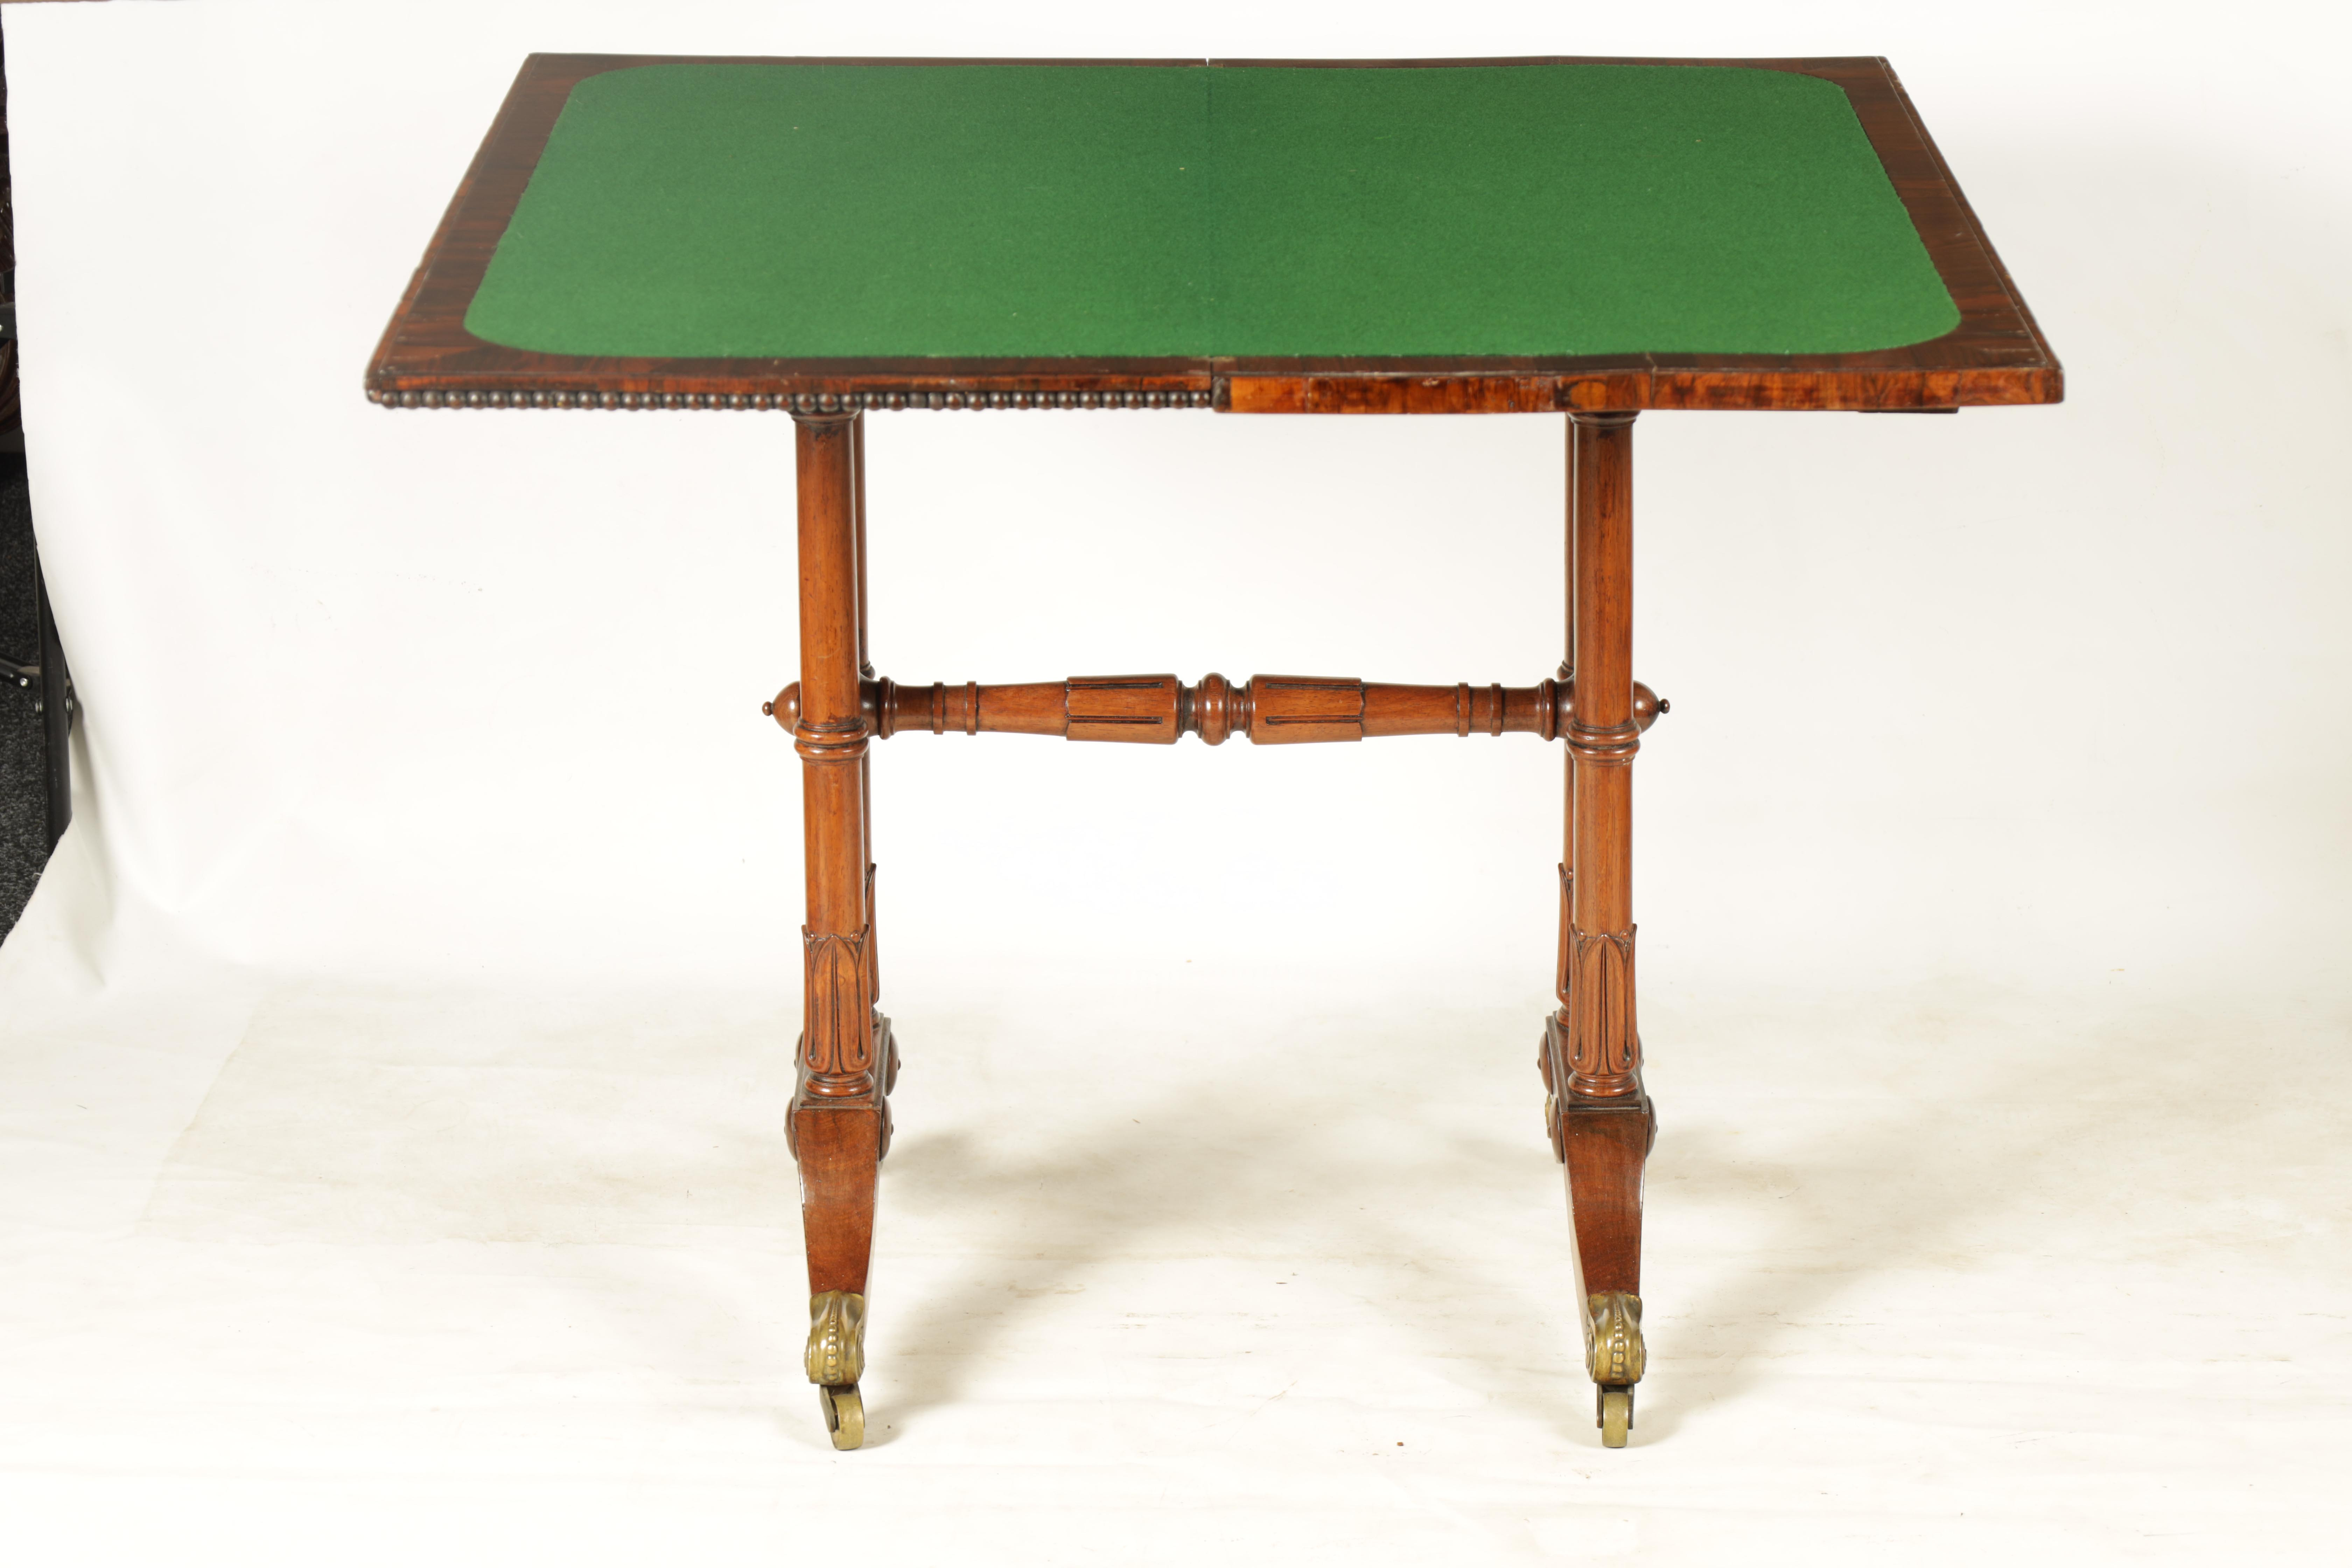 A REGENCY FIGURED ROSEWOOD CARD TABLE IN THE MANNER OF T & G SEDDON with revolving top revealing a - Image 6 of 9